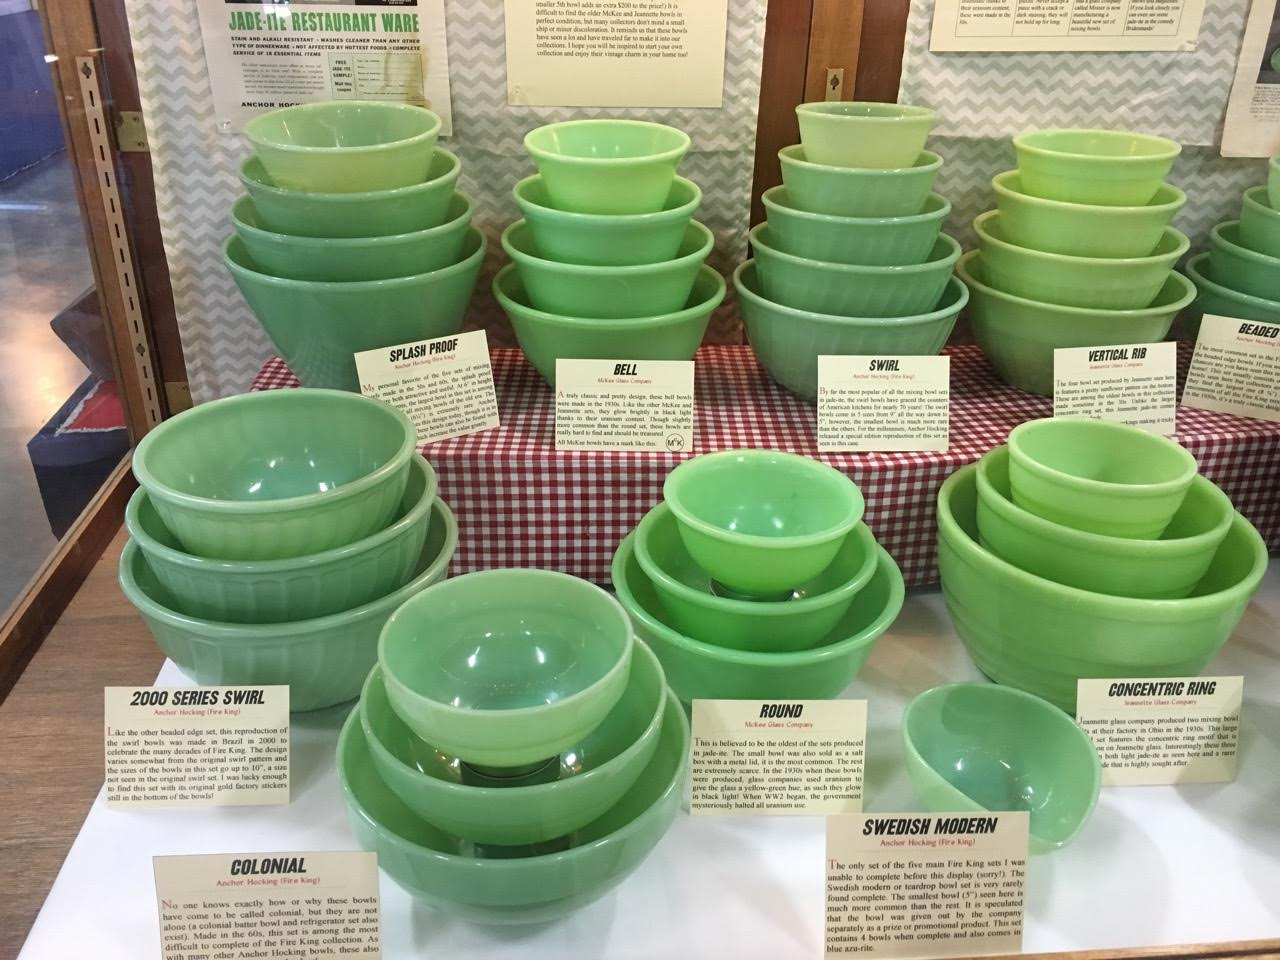 Good Things by David: An Exhibition of Jadeite Bowls